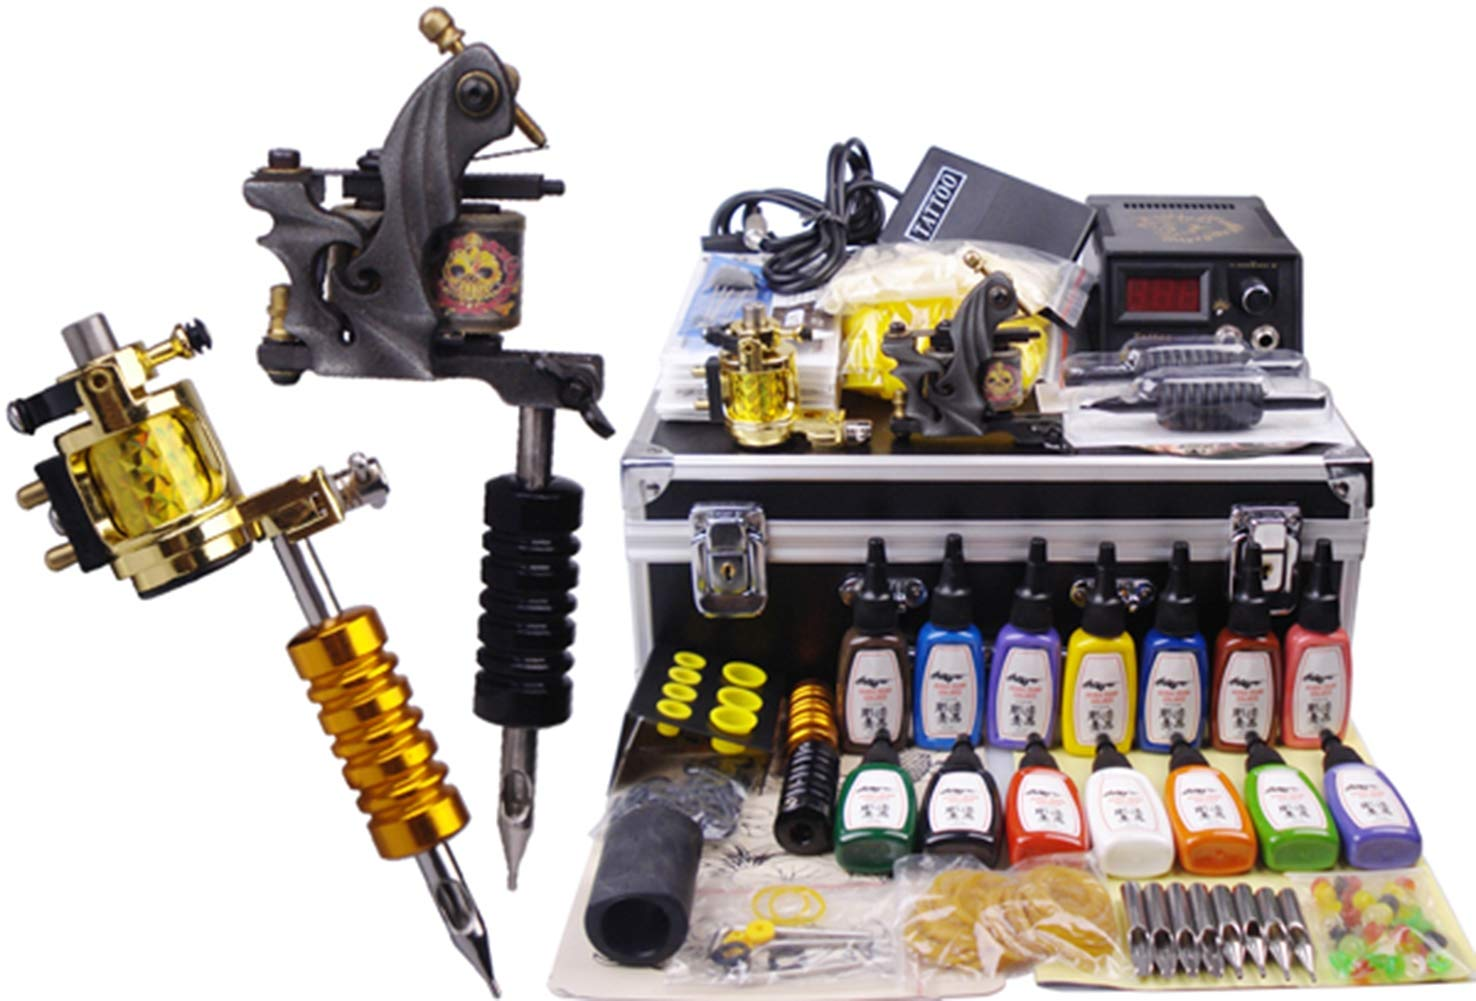 KUKUDEWENSHEN Professional Tattoo Set Full Set of Tattoo Equipment High-end Tattoo Machine Gun